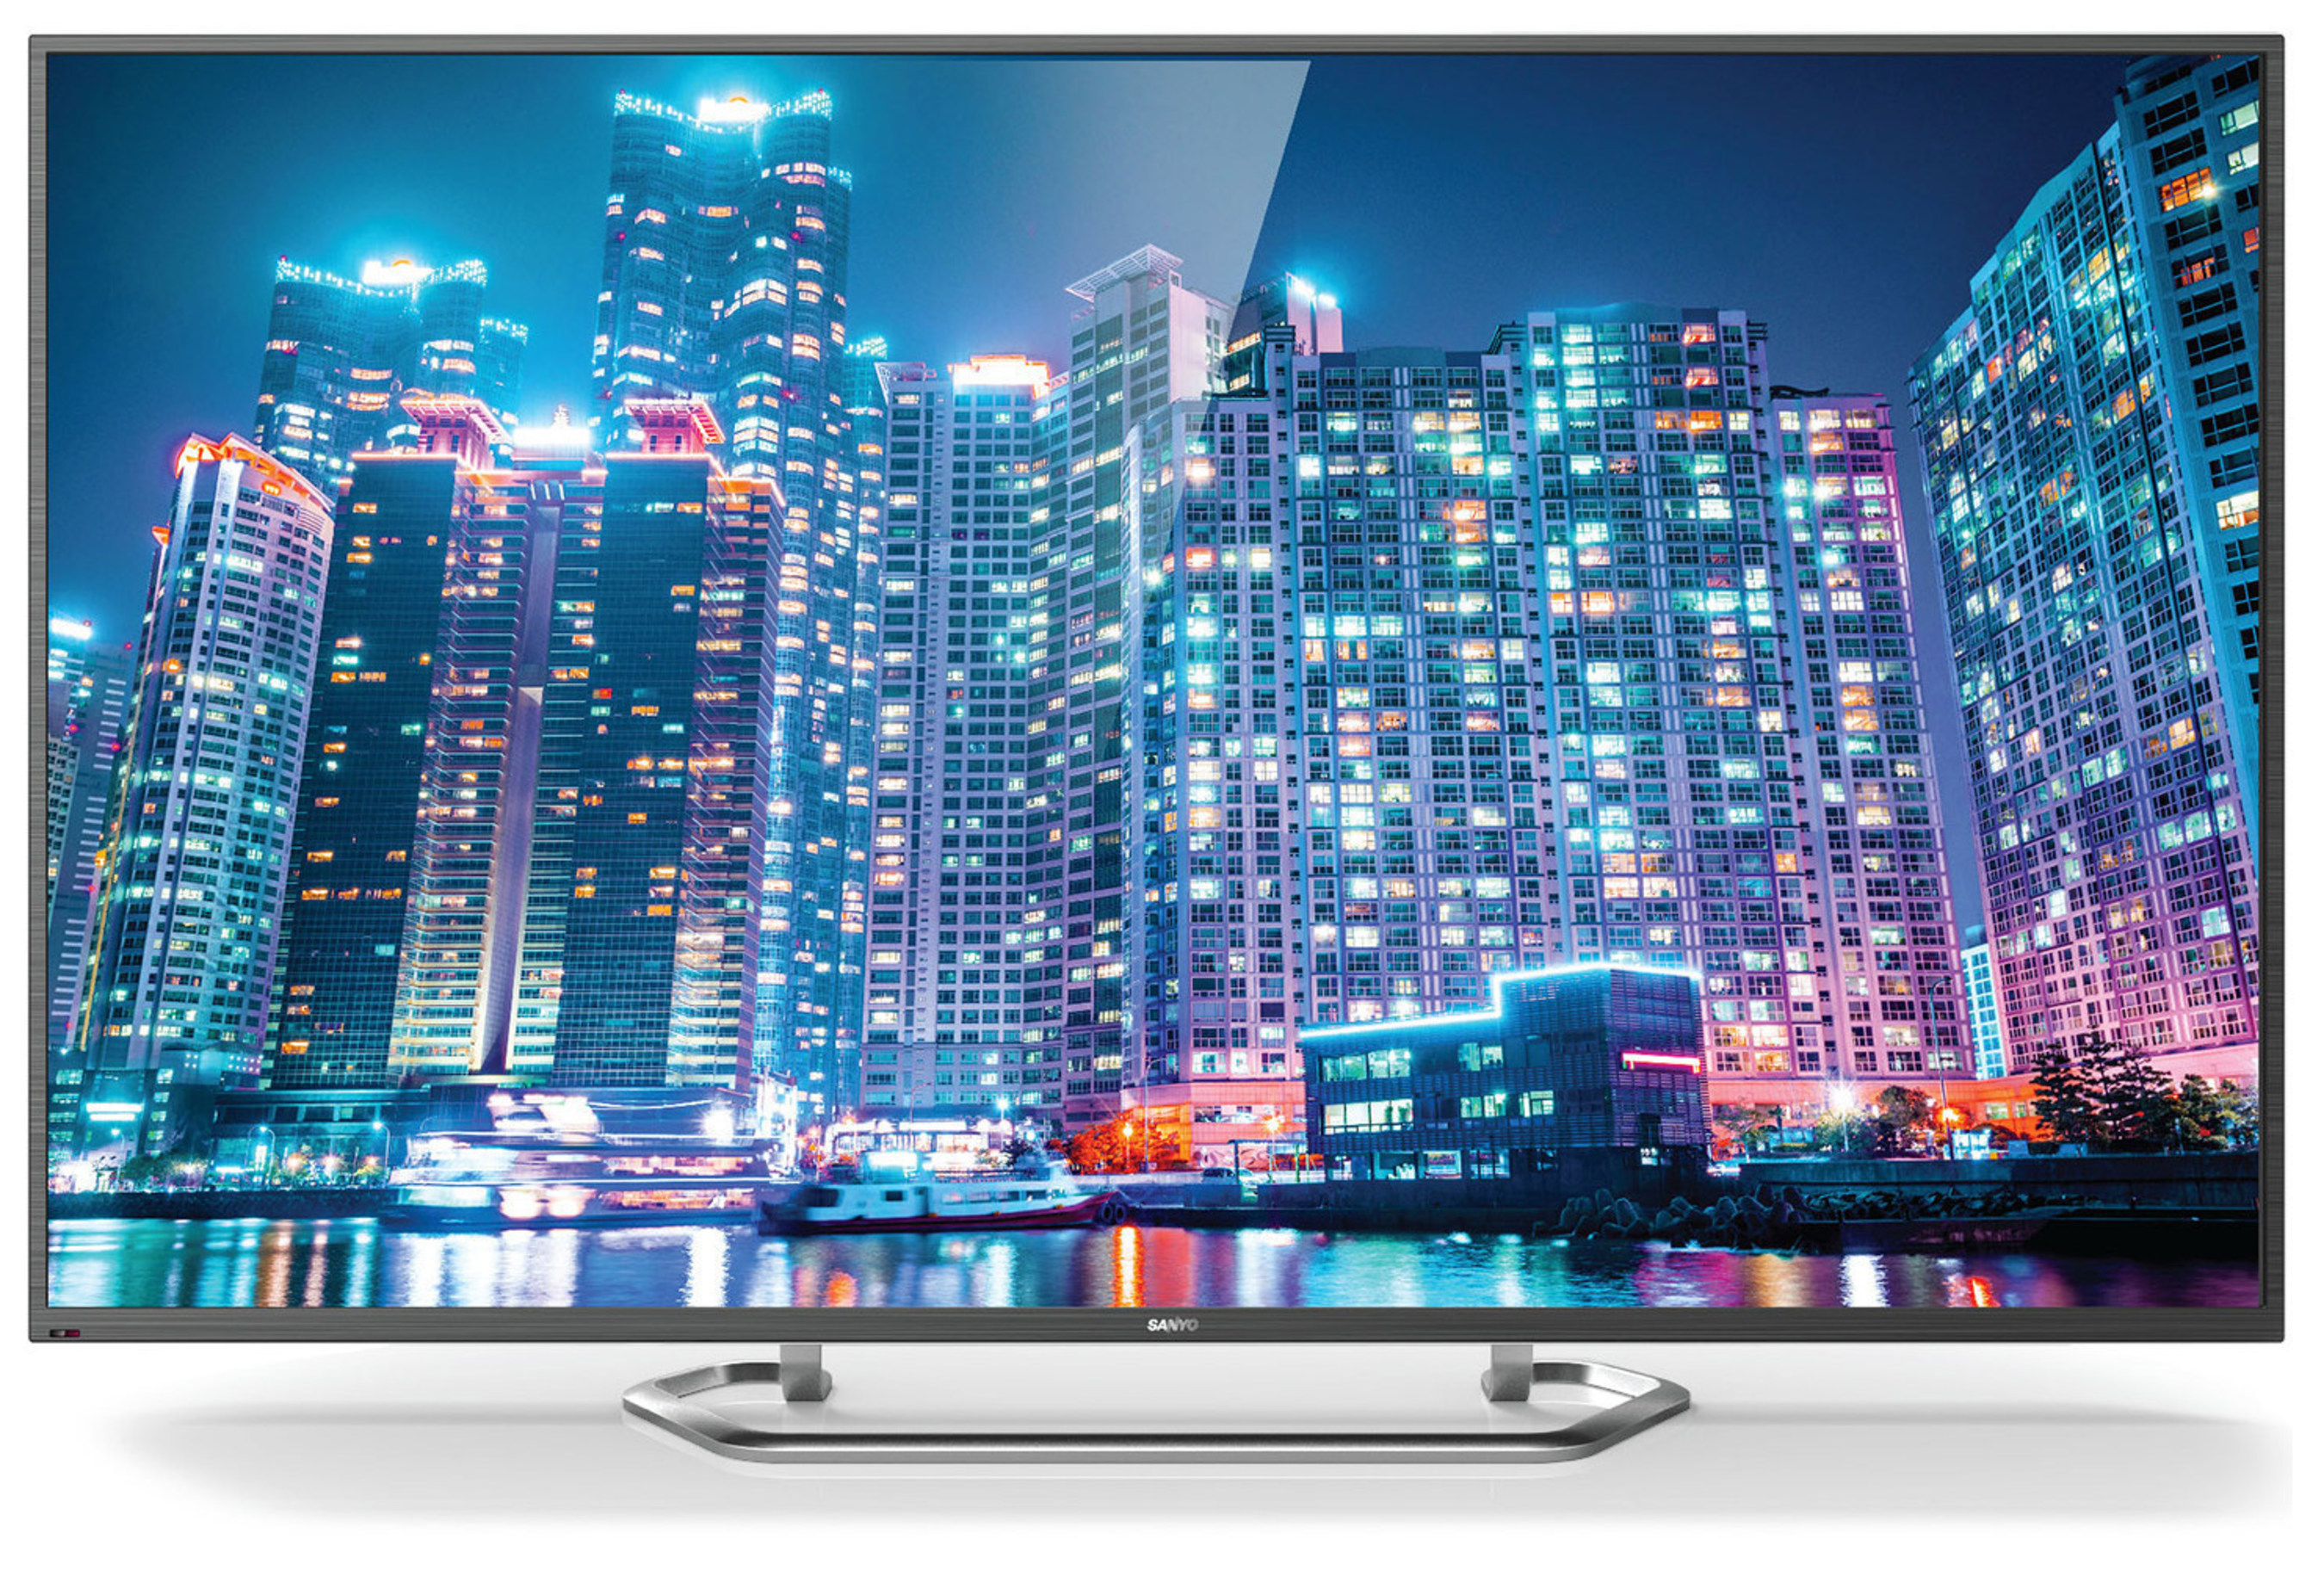 SANYO TV Reveals Incredible Black Friday Deal on 48\